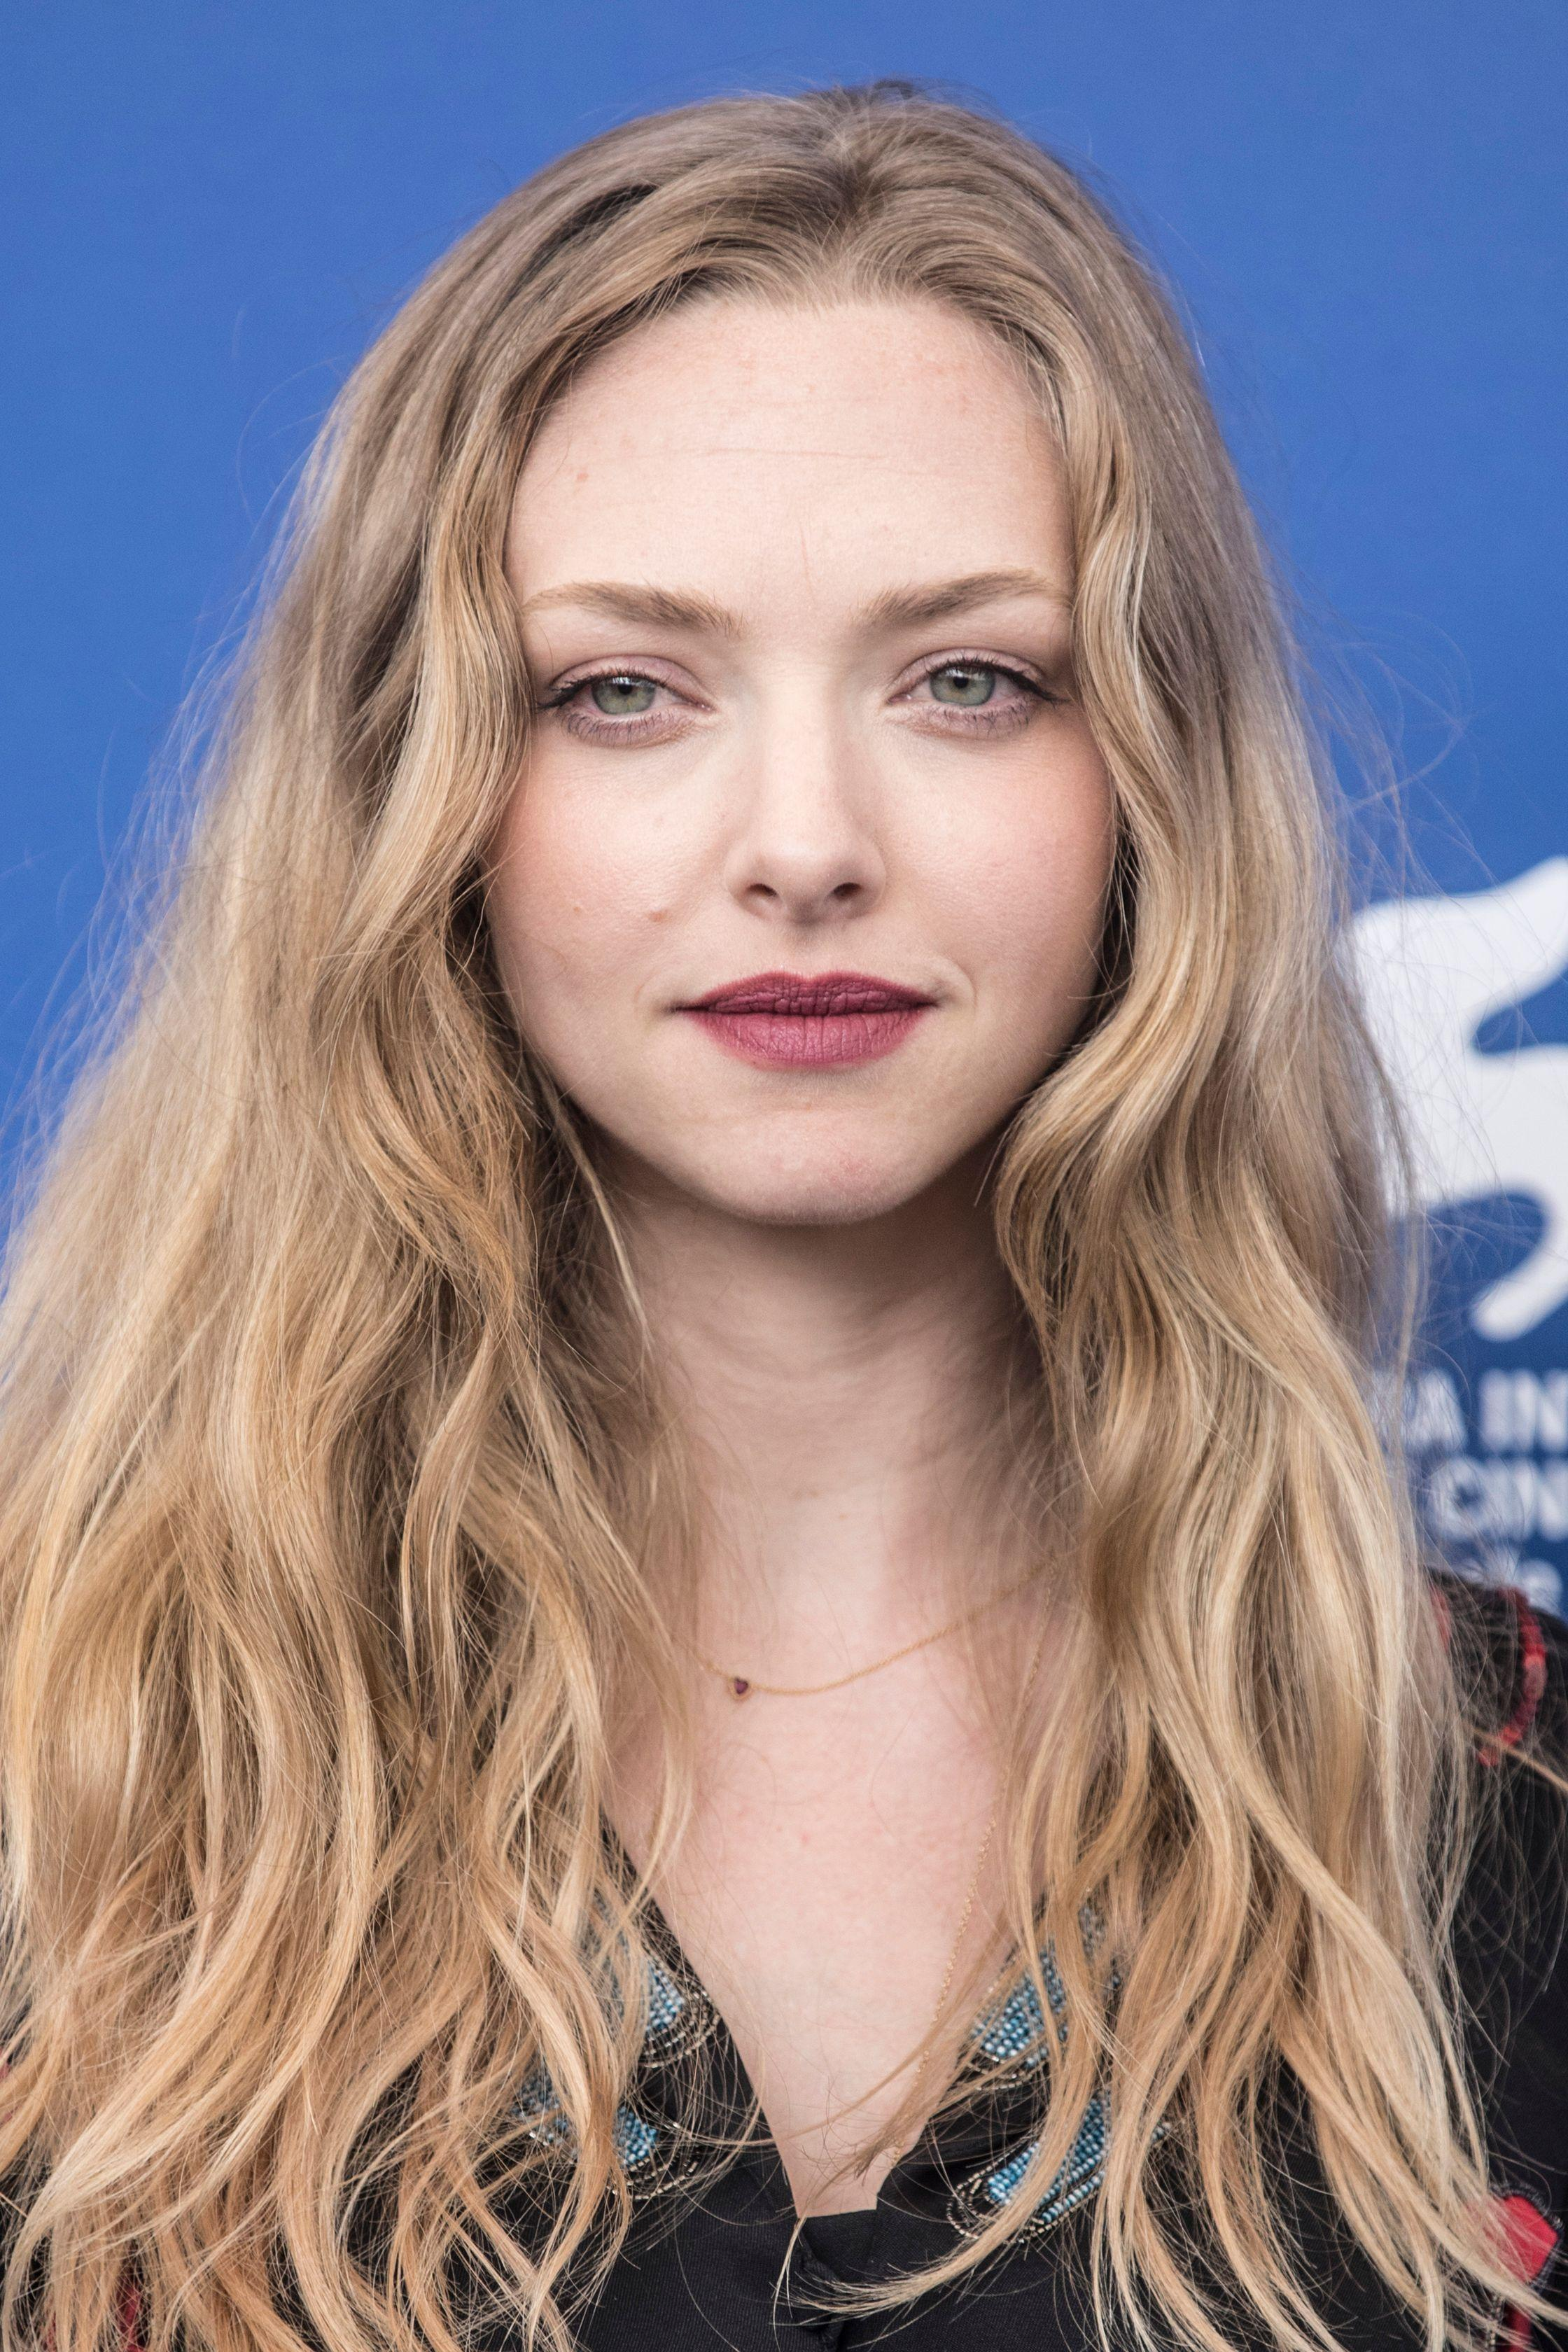 I got curl type 2A and my hair twins are: Emma Stone, Amanda Seyfried, Nicole Richie!